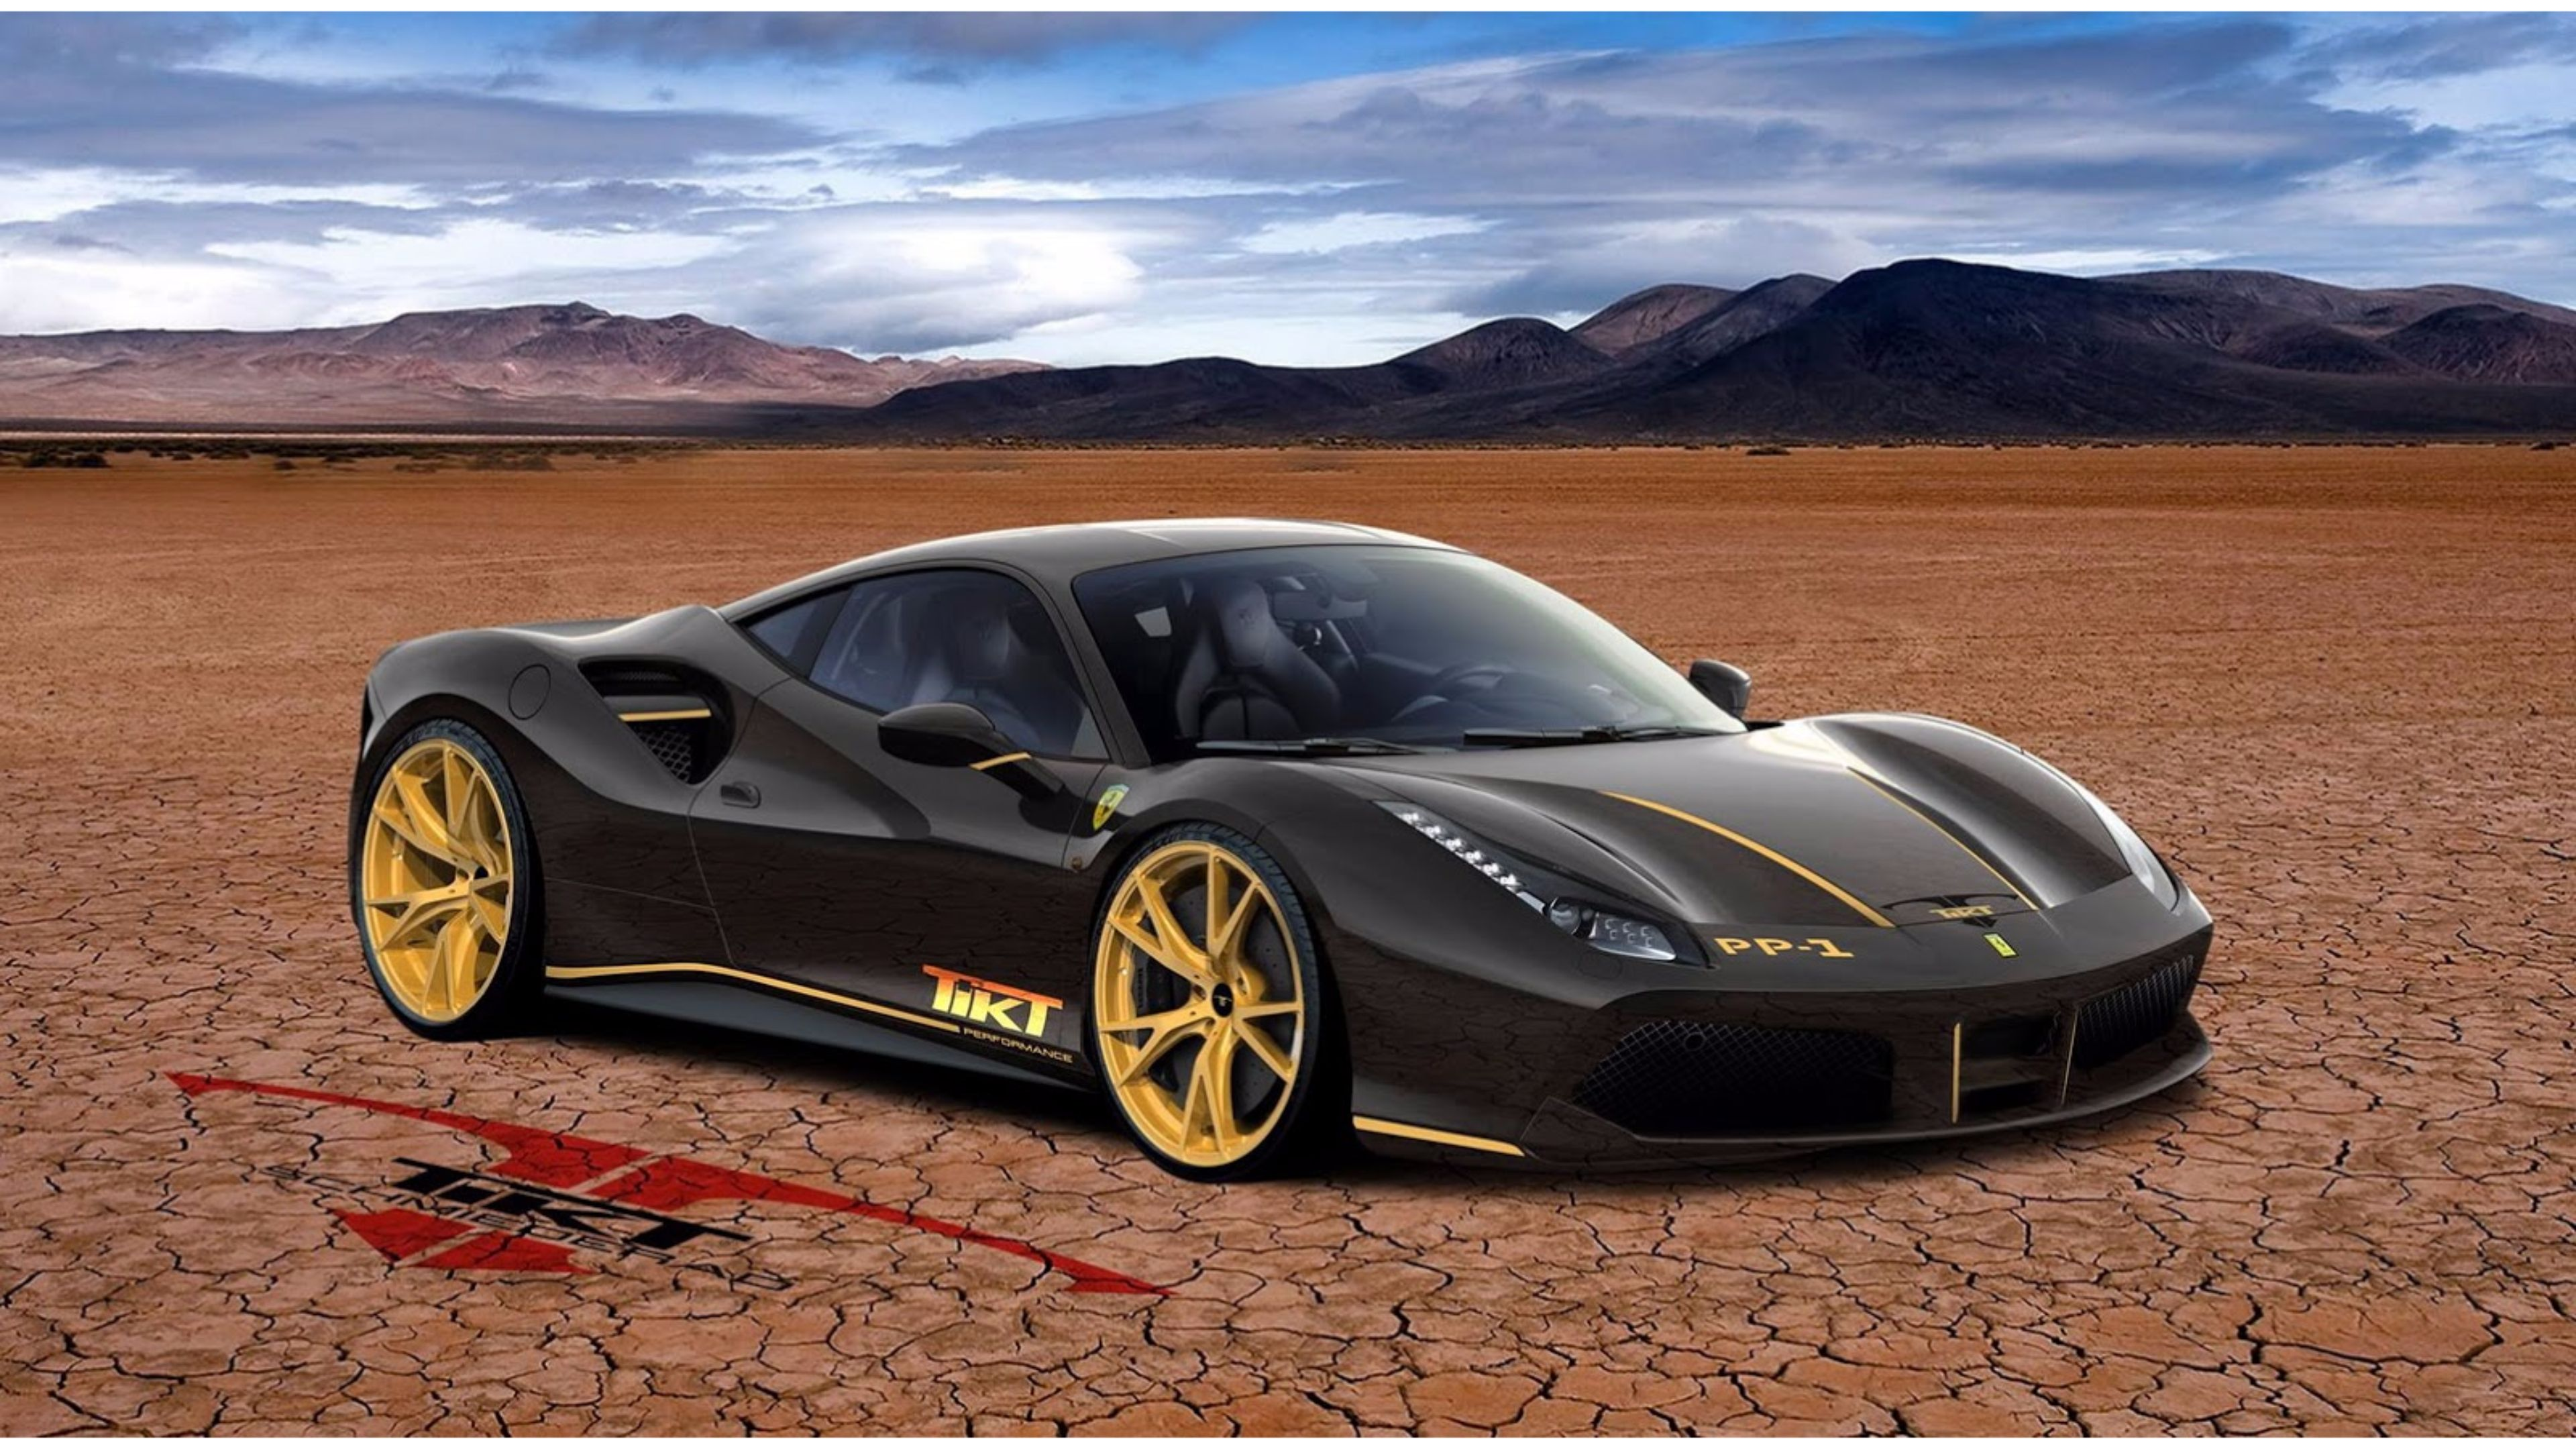 ferrari wallpapers and desktop backgrounds up to 8K [7680x4320] resolution